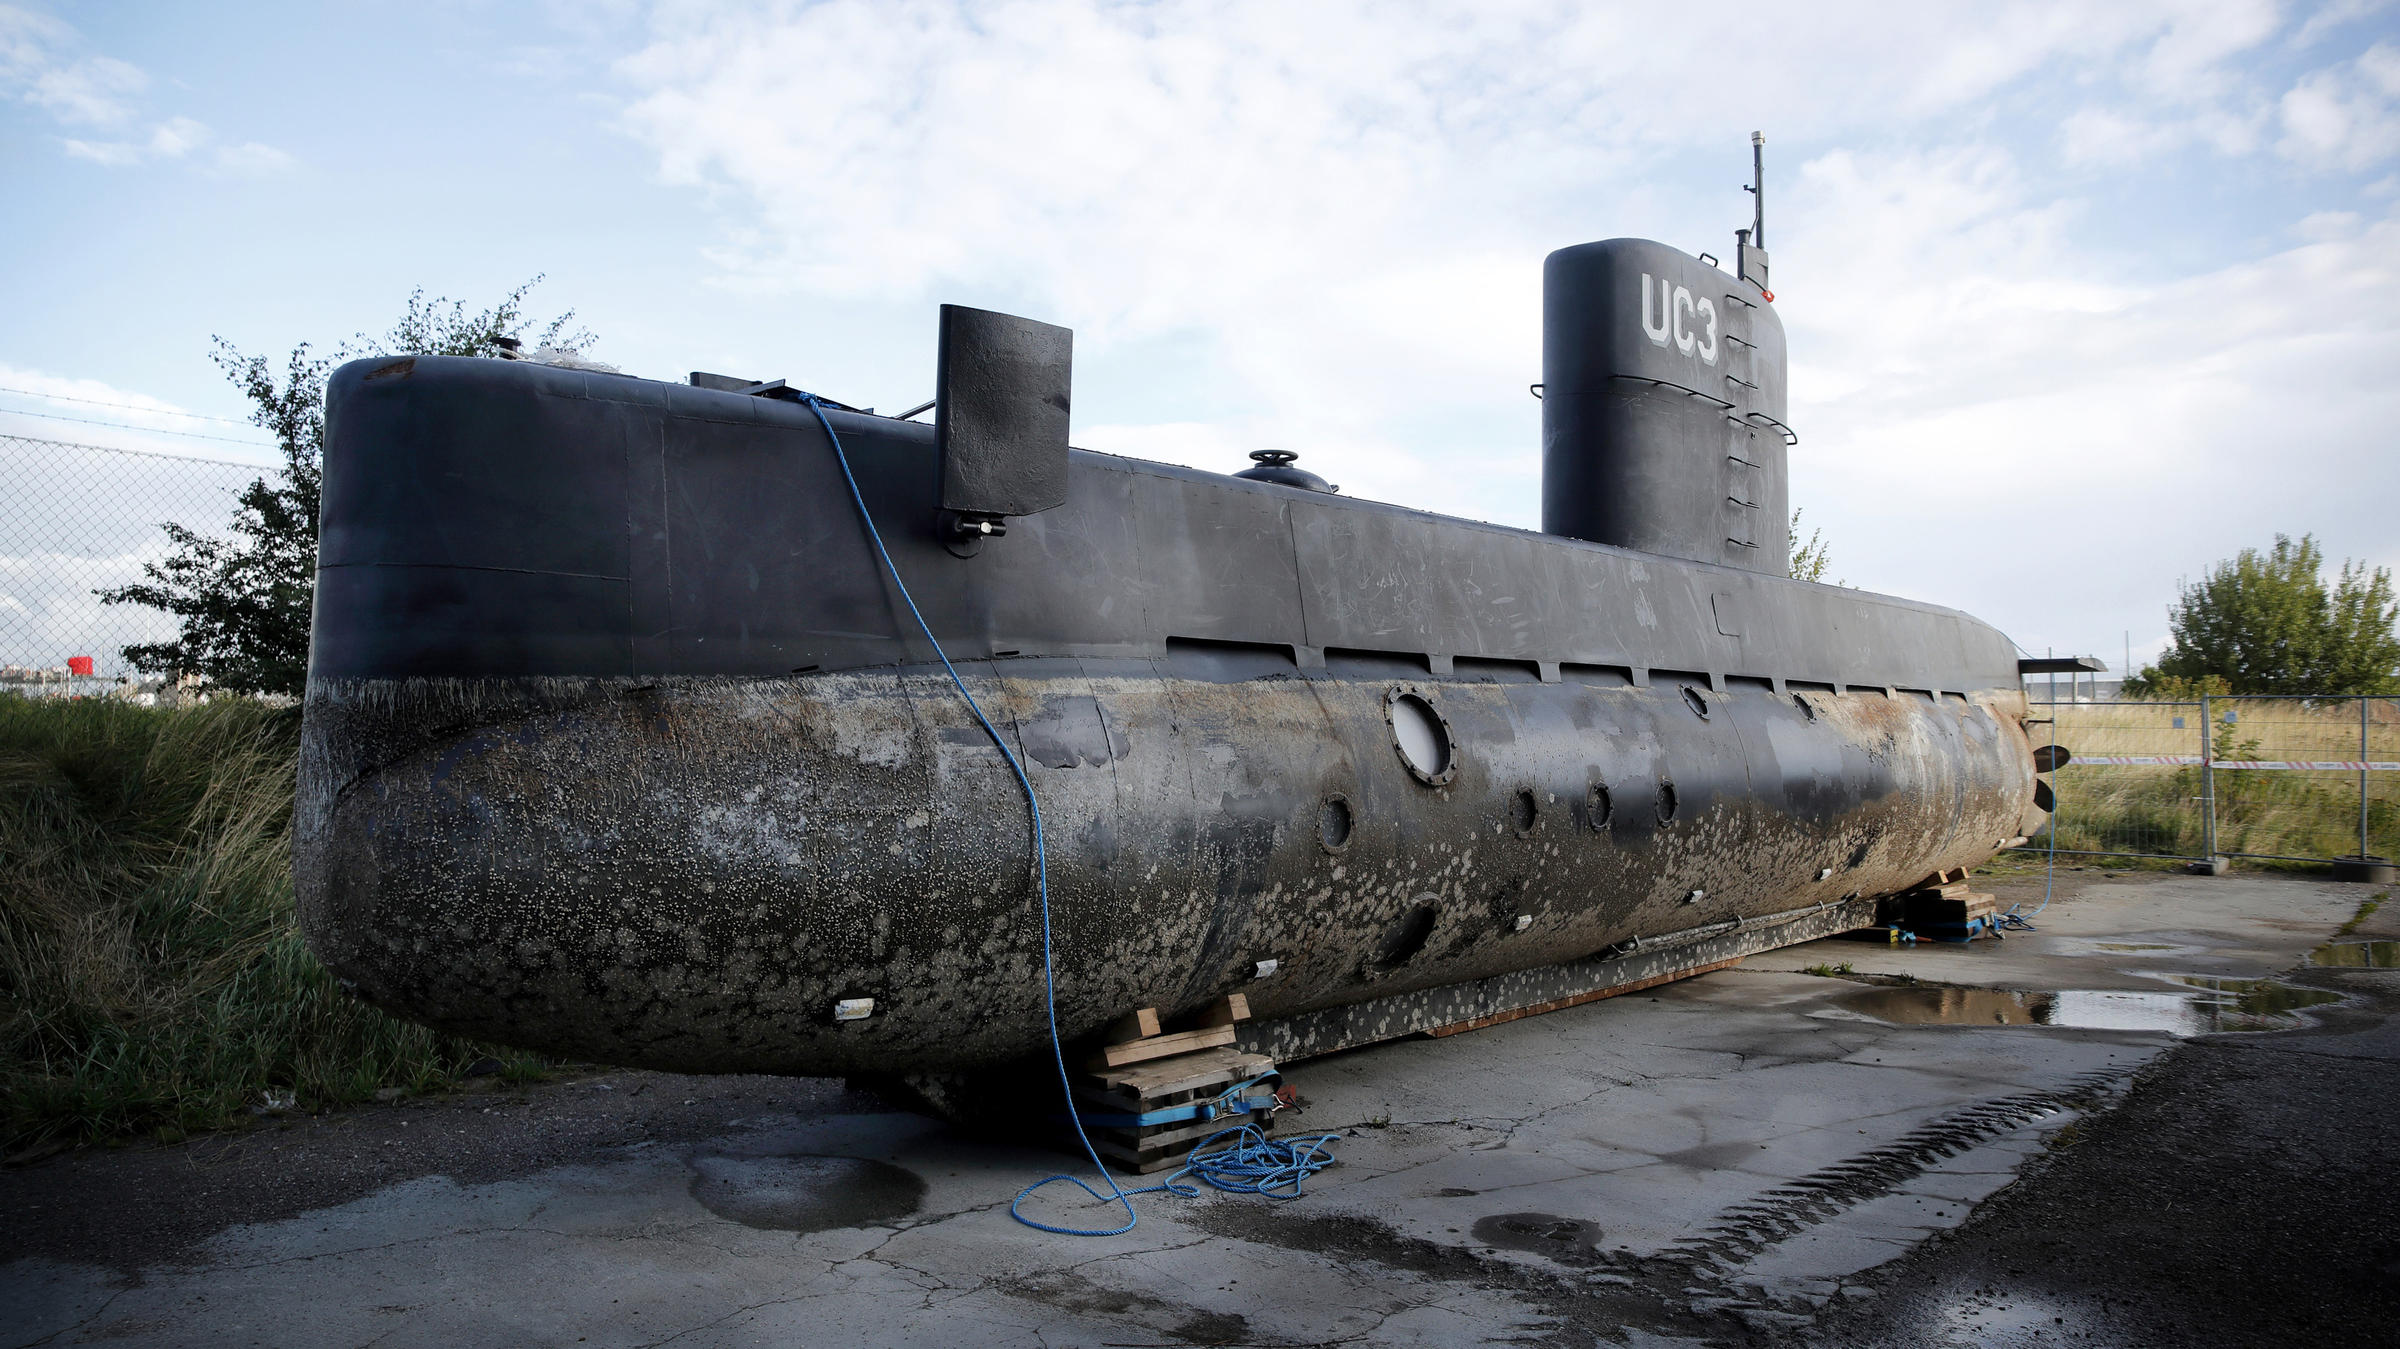 Swedish journalist's torso found in submarine death mystery